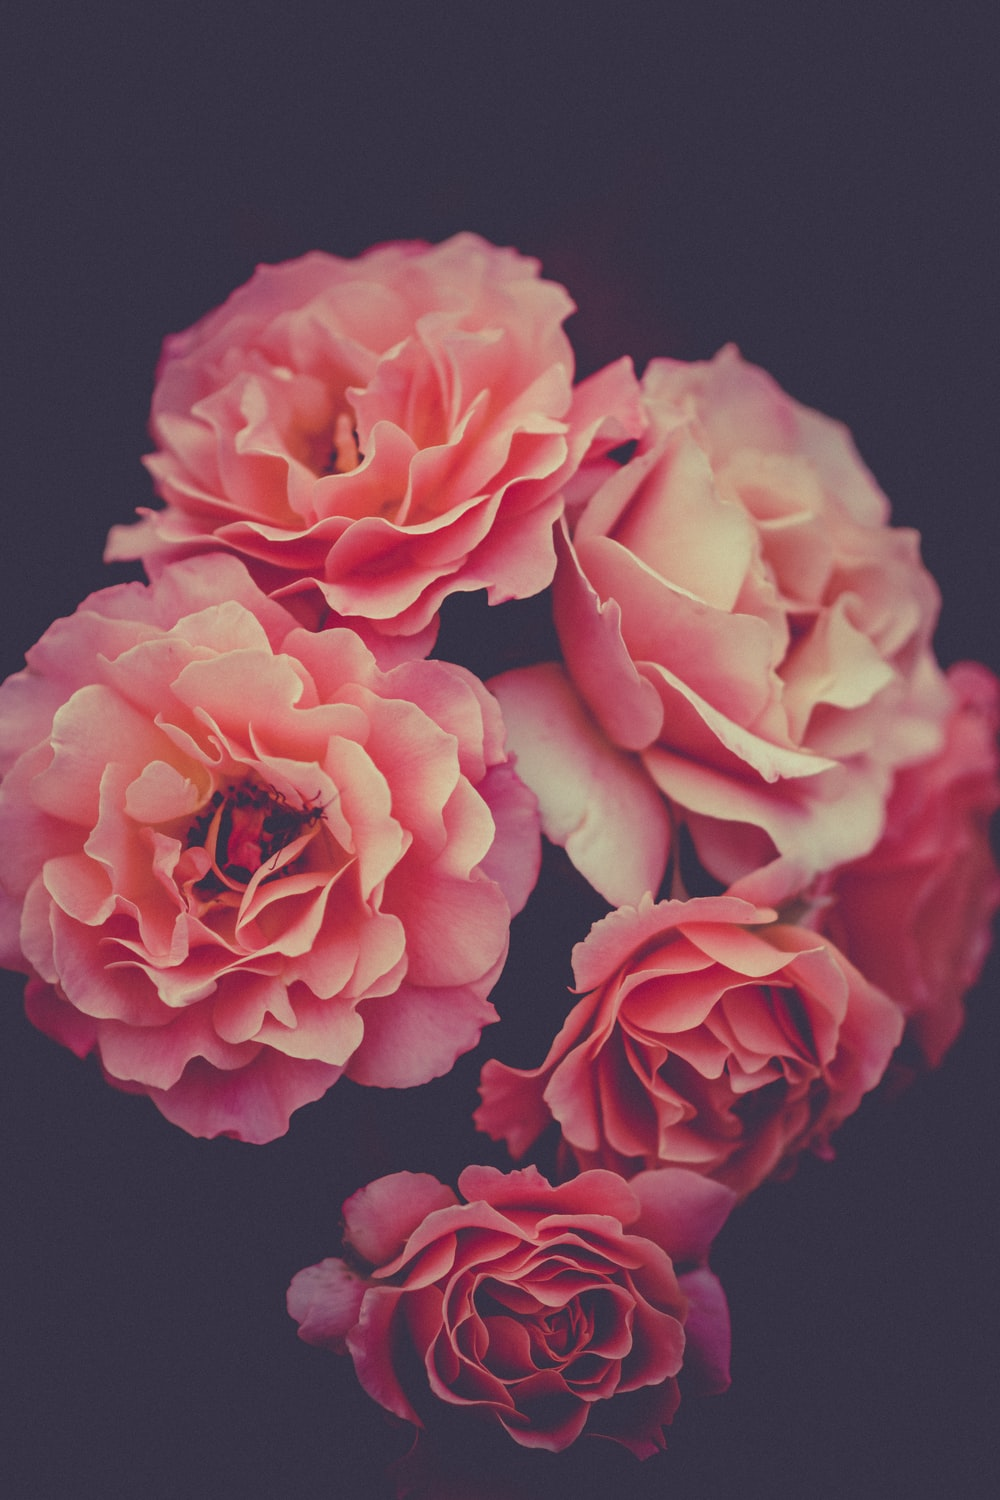 Roses are red photo by tun nguyn minh tuannguyenminh on unsplash pink flowers mightylinksfo